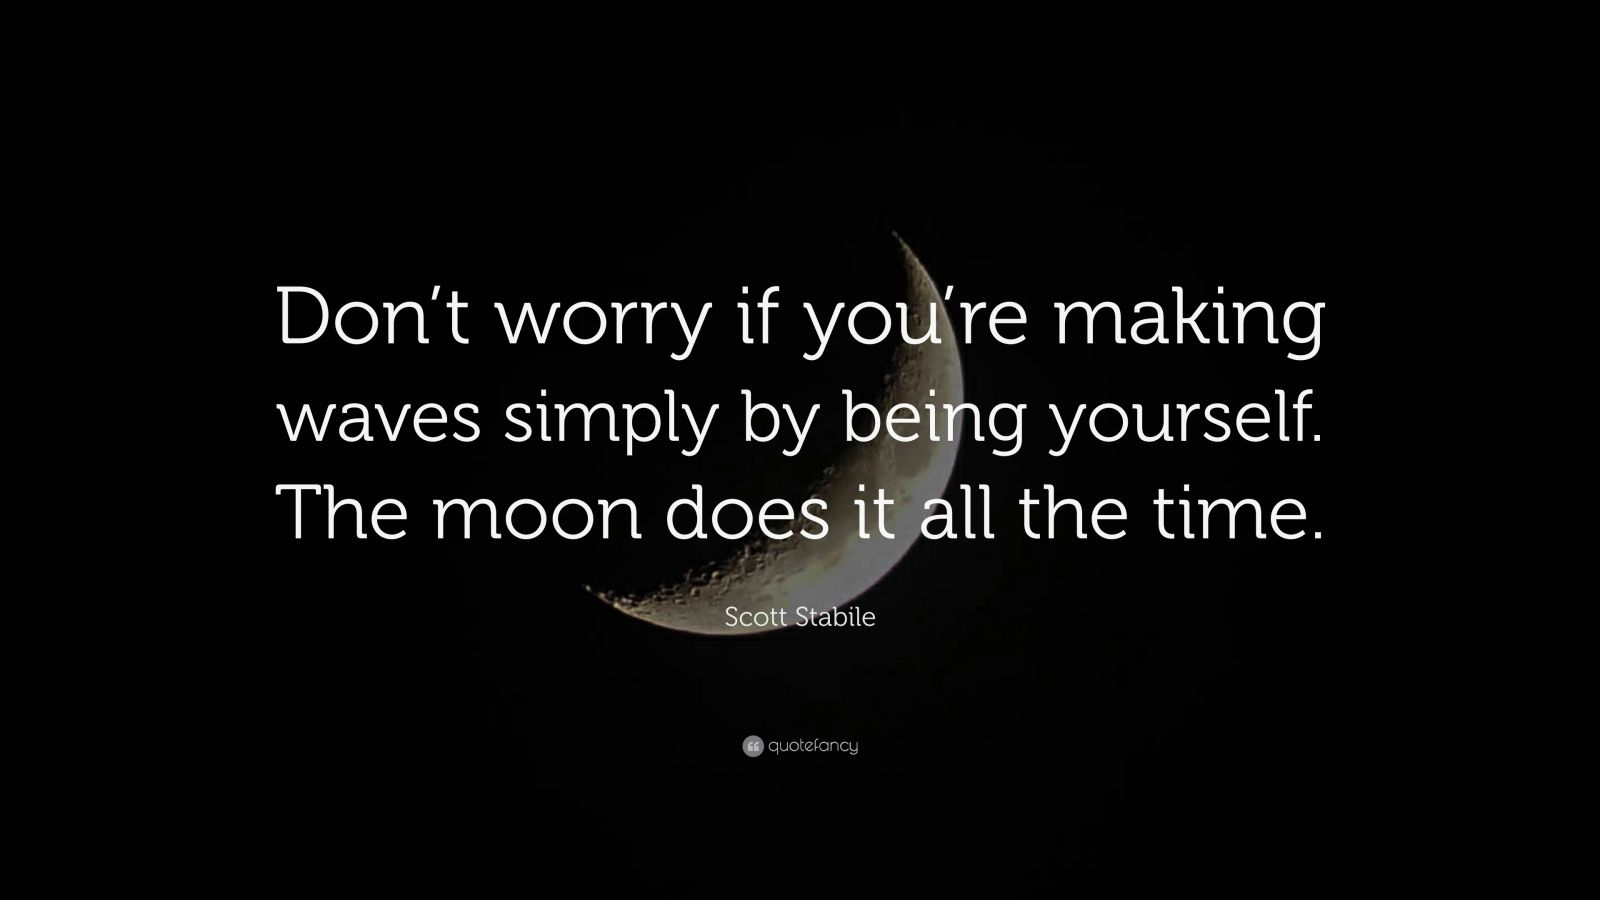 """Scott Stabile Quote: """"Don't worry if you're making waves simply by being yourself. The moon does it all the time."""""""